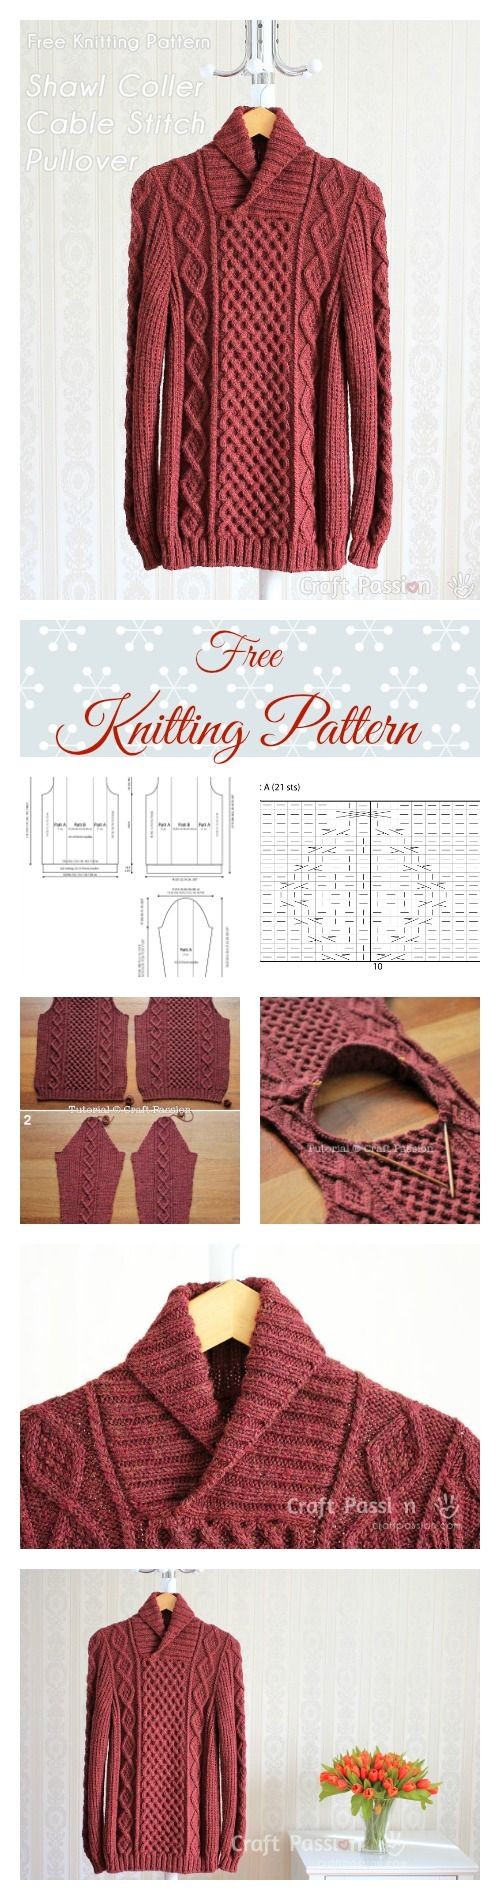 Shawl Collar Cable Pullover - Free Knitting Pattern   Knitting ...